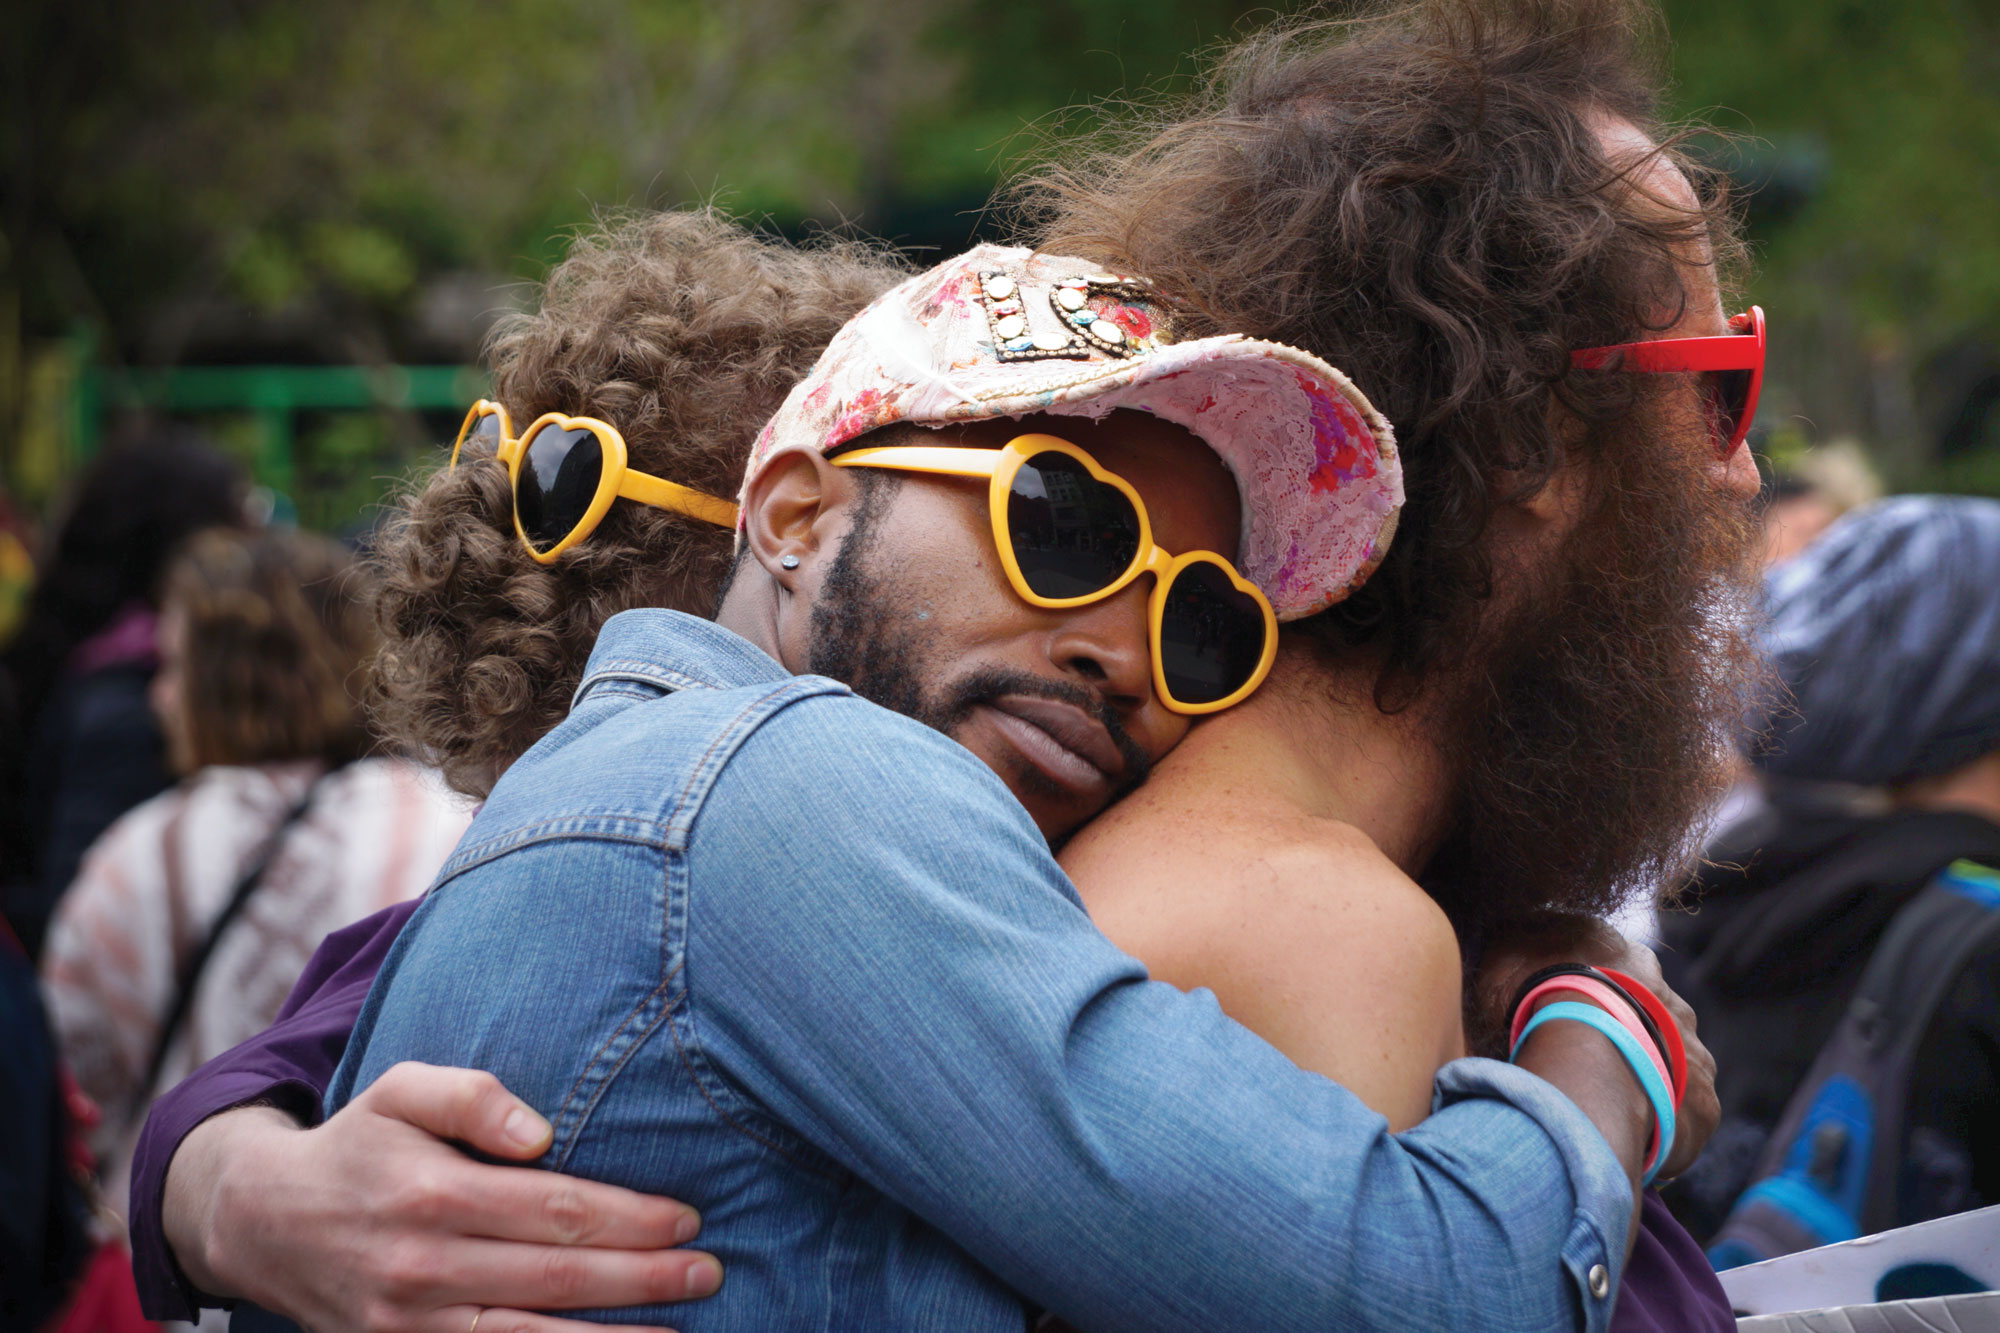 Photo of man wearing heart-shaped sunglasses hugging another man.